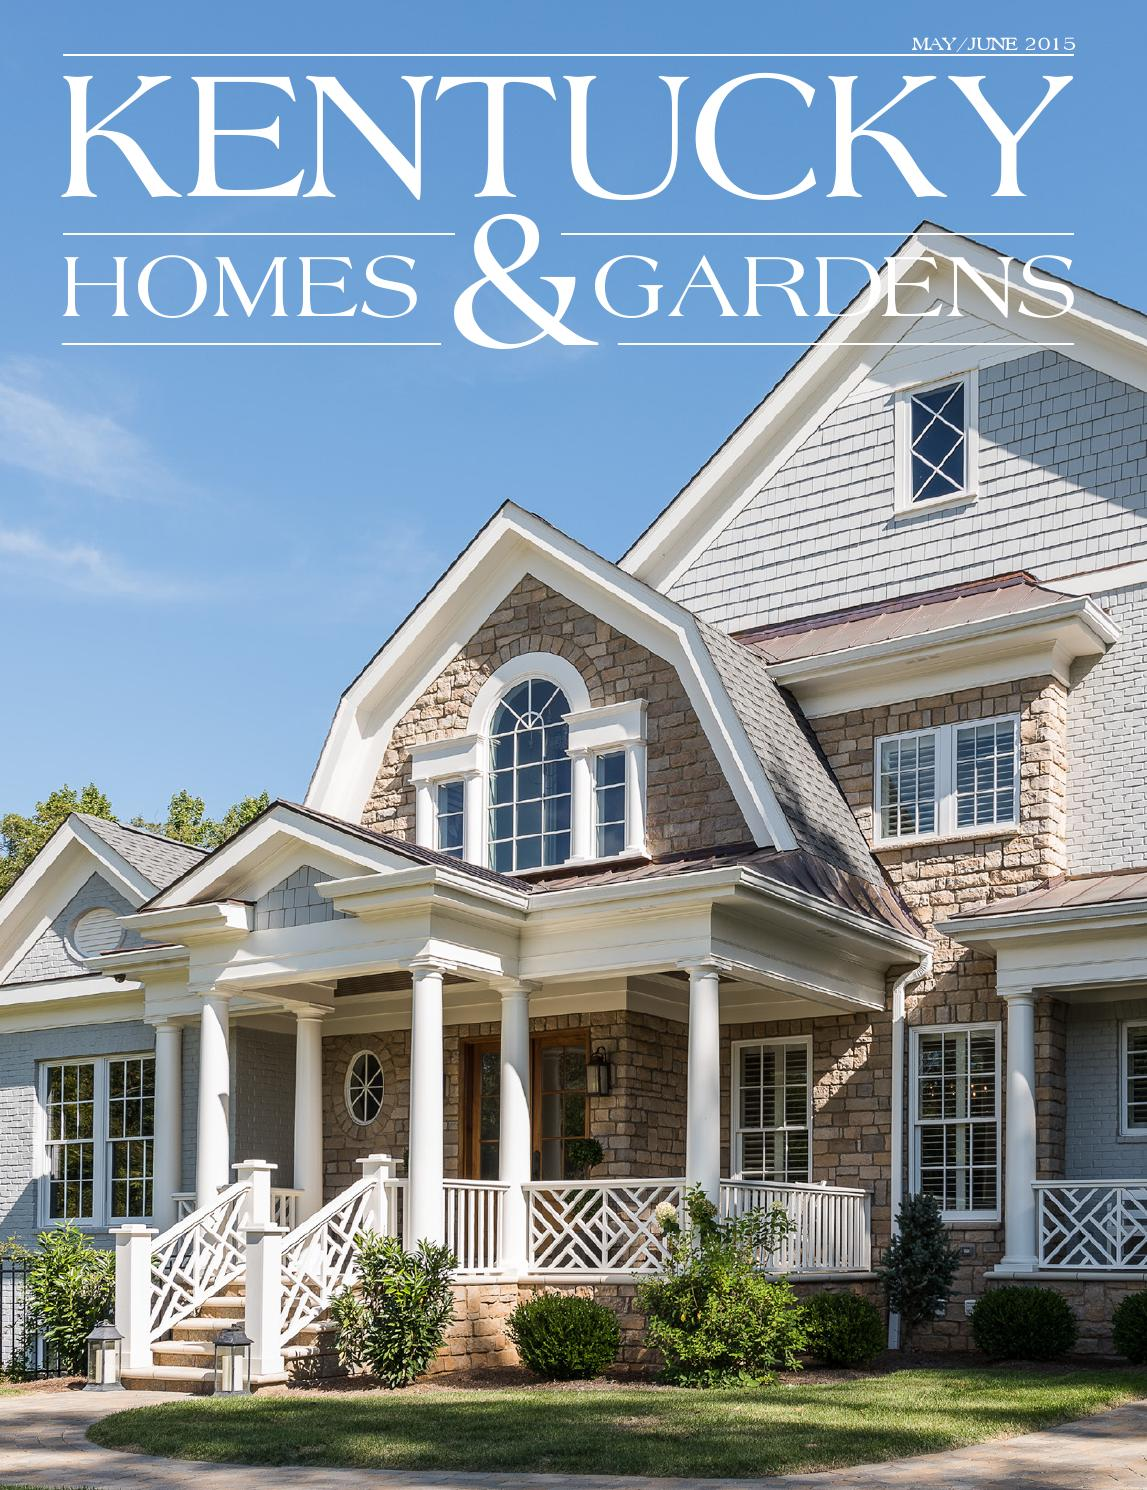 Kentucky homes gardens magazine by kentucky homes for Kentucky home builders